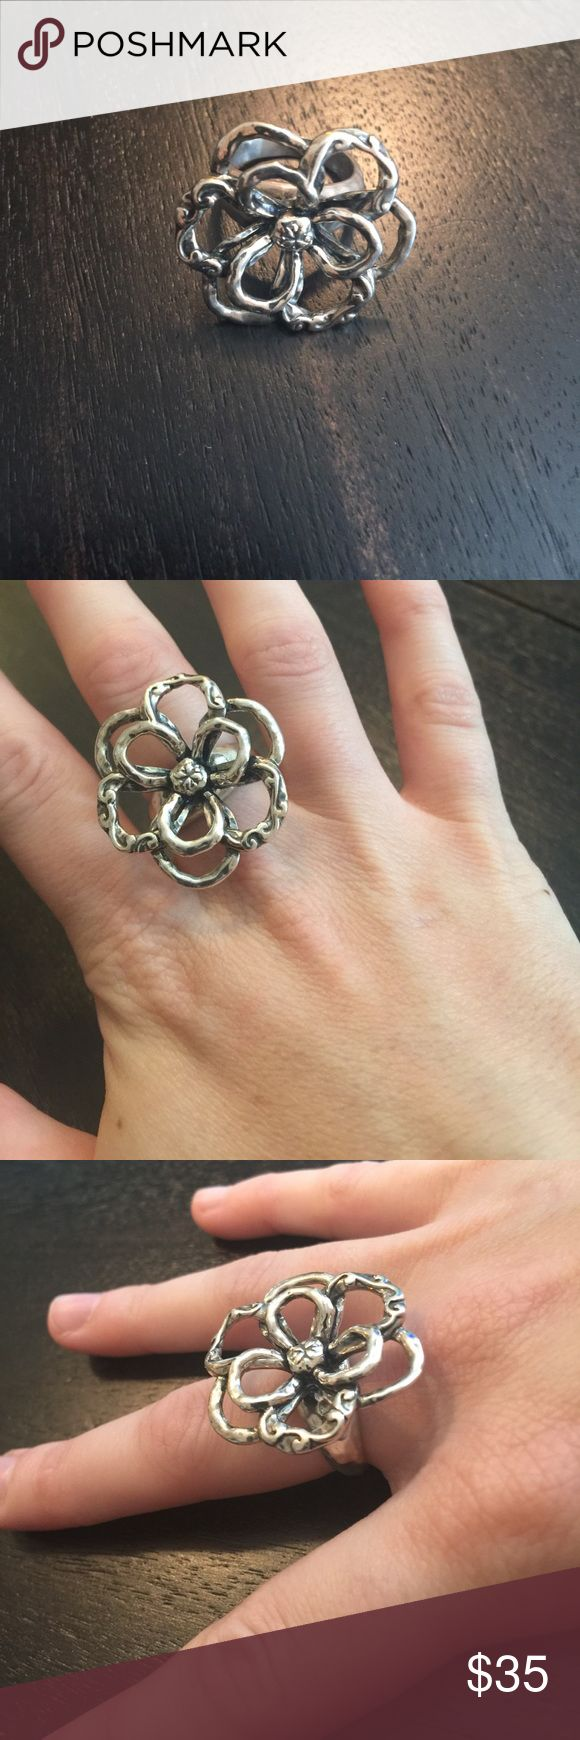 Silpada Designs ring Silpada Designs flower ring Silpada Jewelry Rings